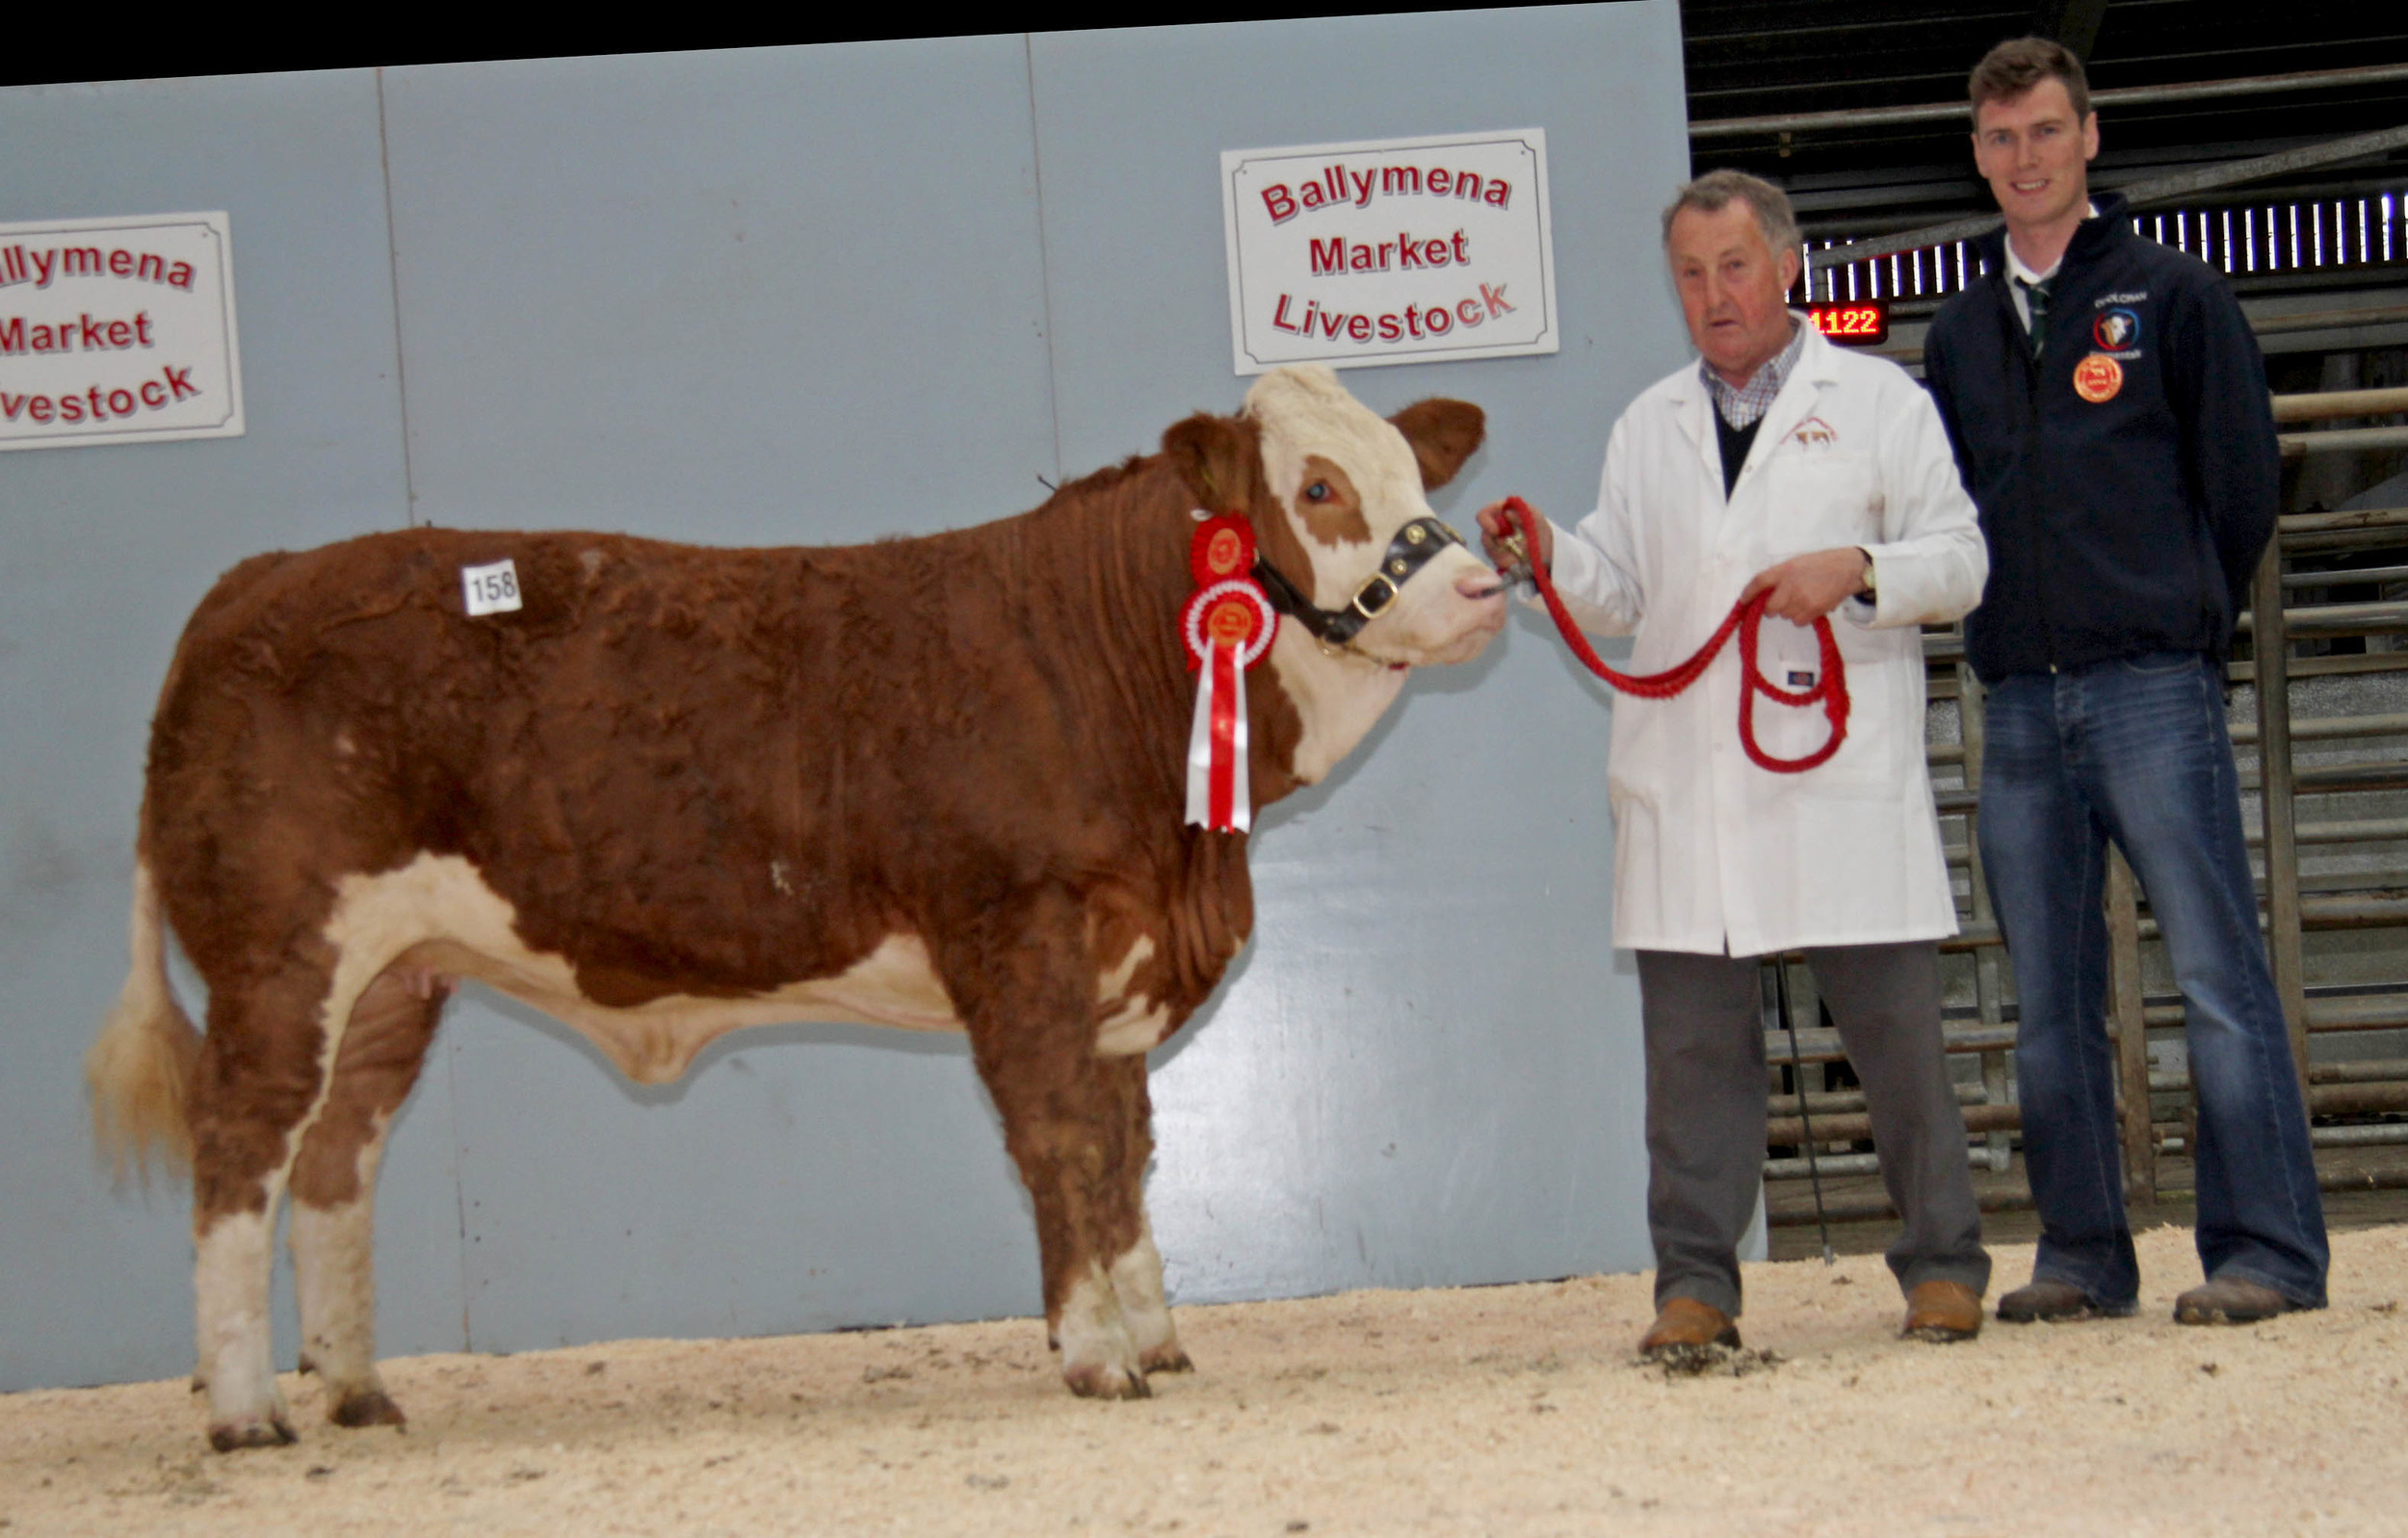 Female Champion was Cleenagh Gem sold for 2,700gns by Adrian Richardson, Maguiresbridge. Included is judge Paul McDonald, Tempo.